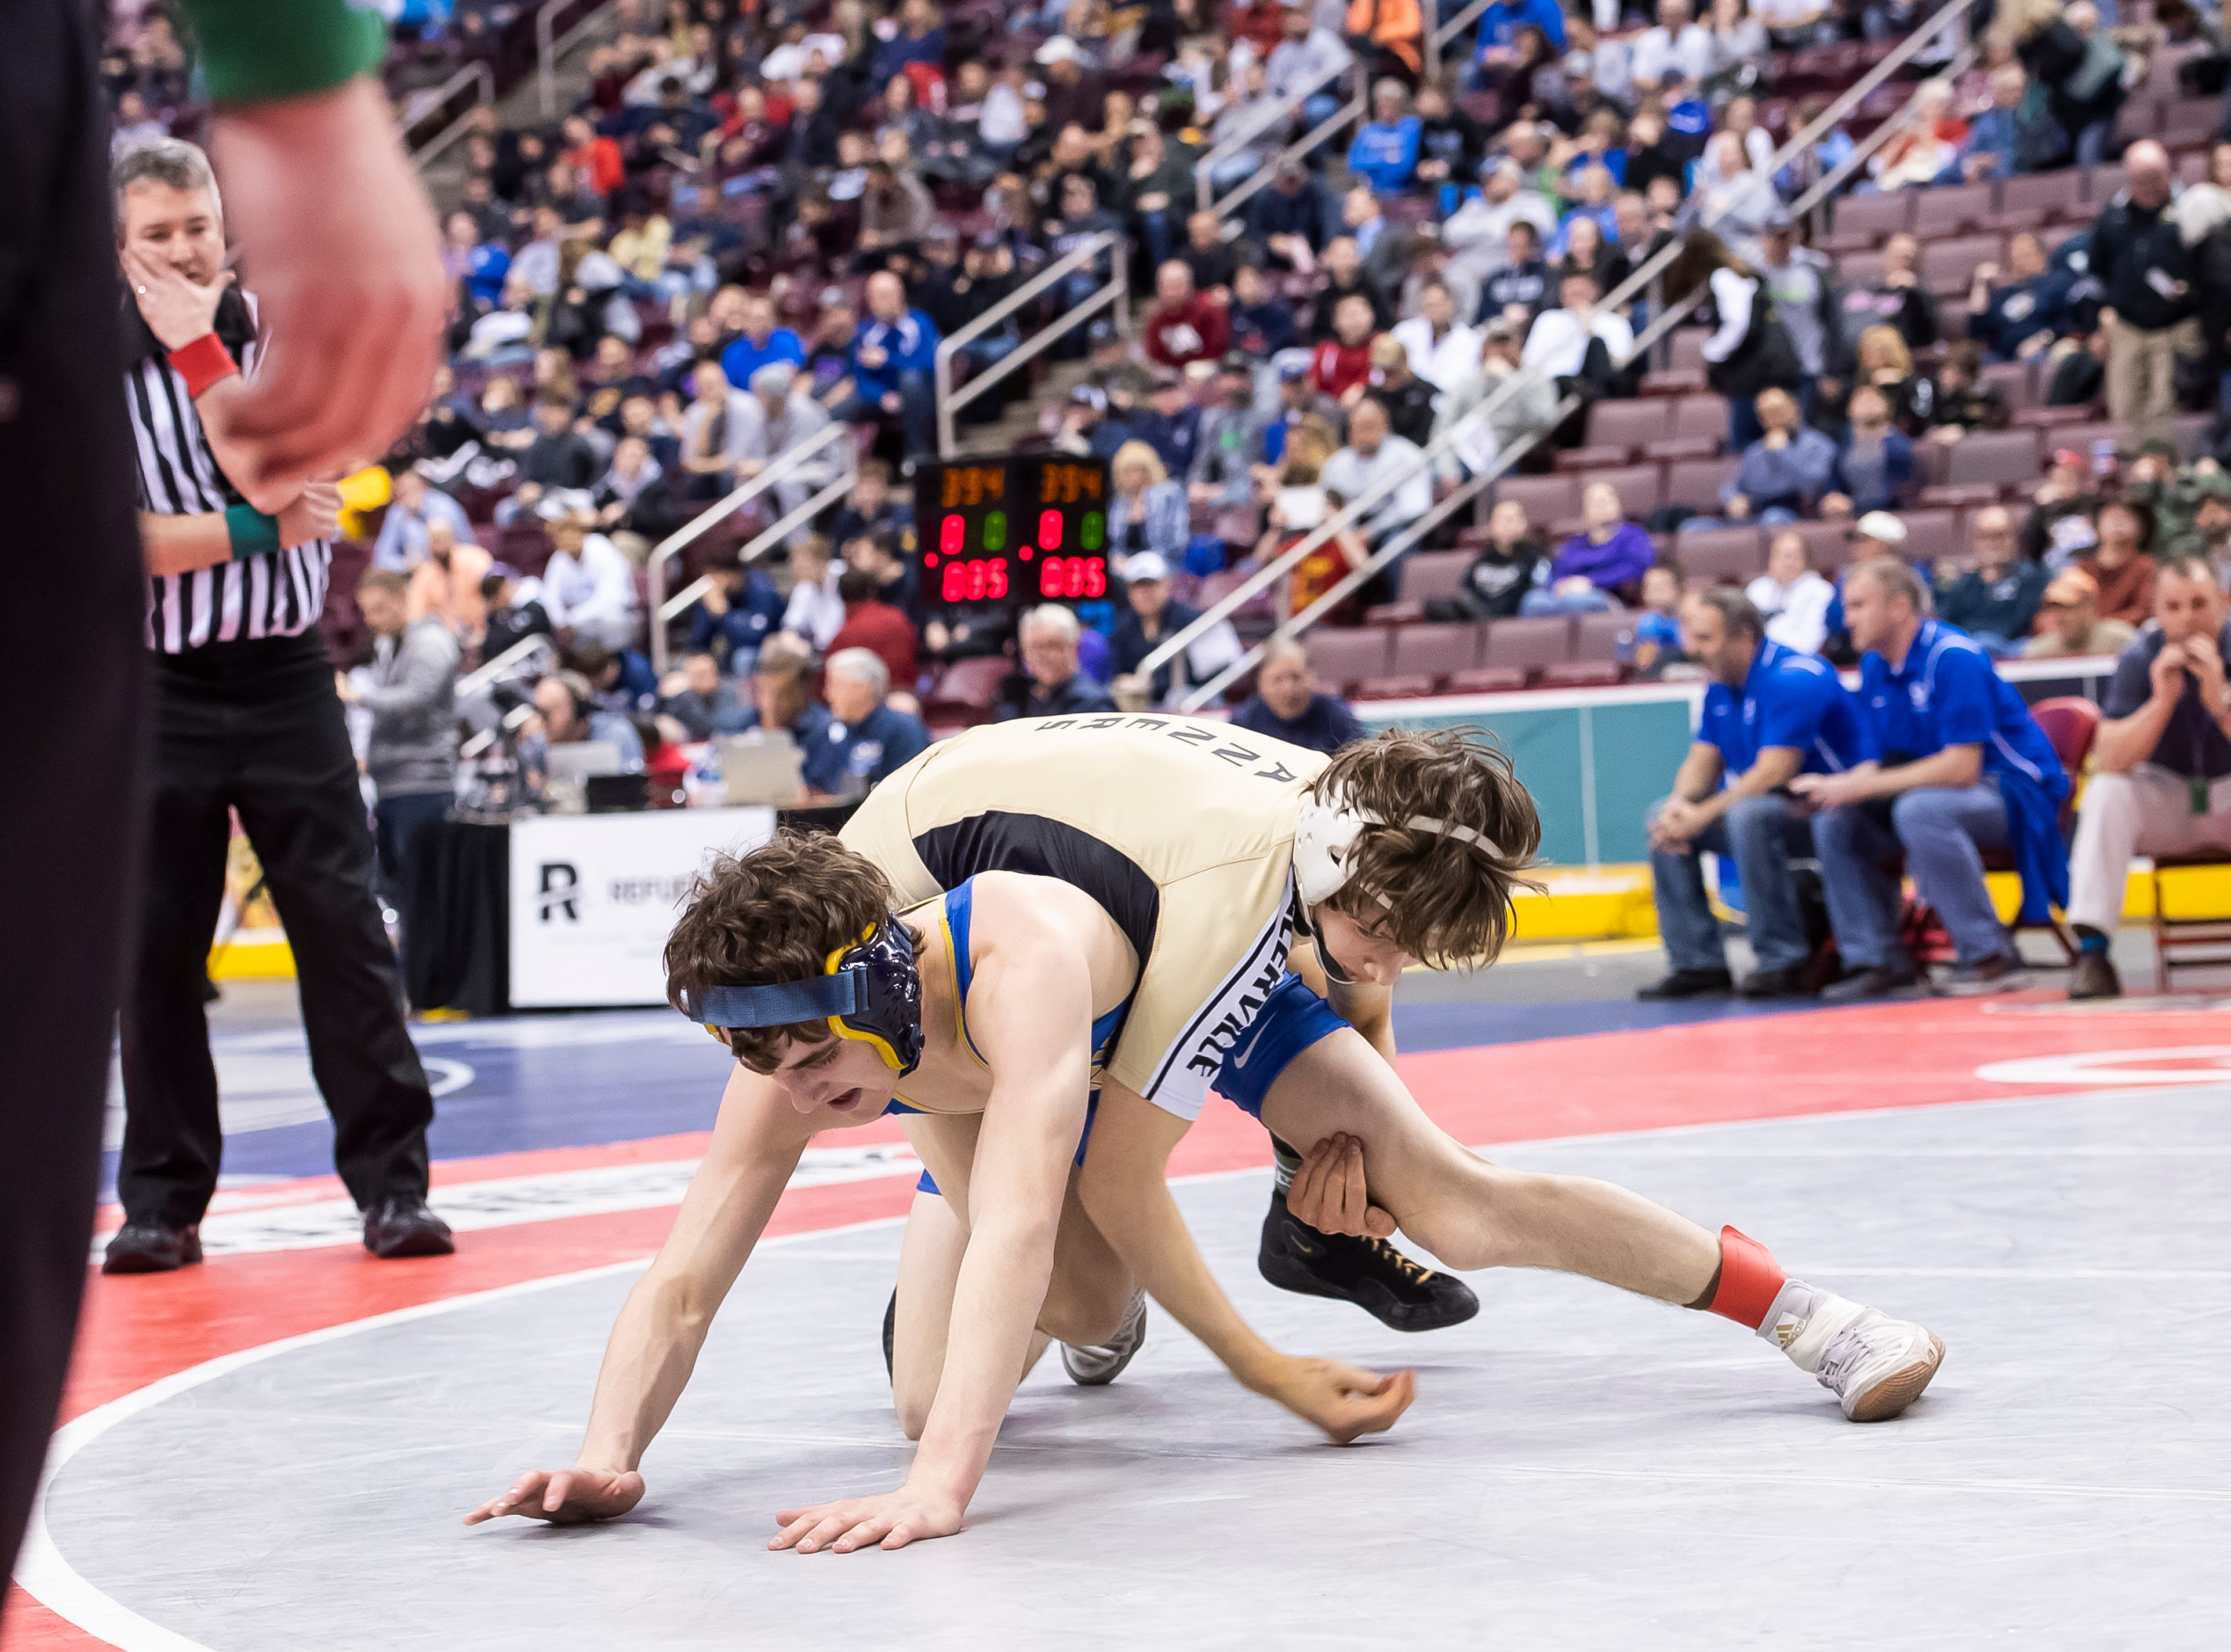 Biglerville's Levi Haines, top, wrestles Chestnut Ridge's Kai Burkett during the 2A 106-pound semifinal bout at the Giant Center in Hershey Friday, March 8, 2019. Haines won by major decision 8-0.